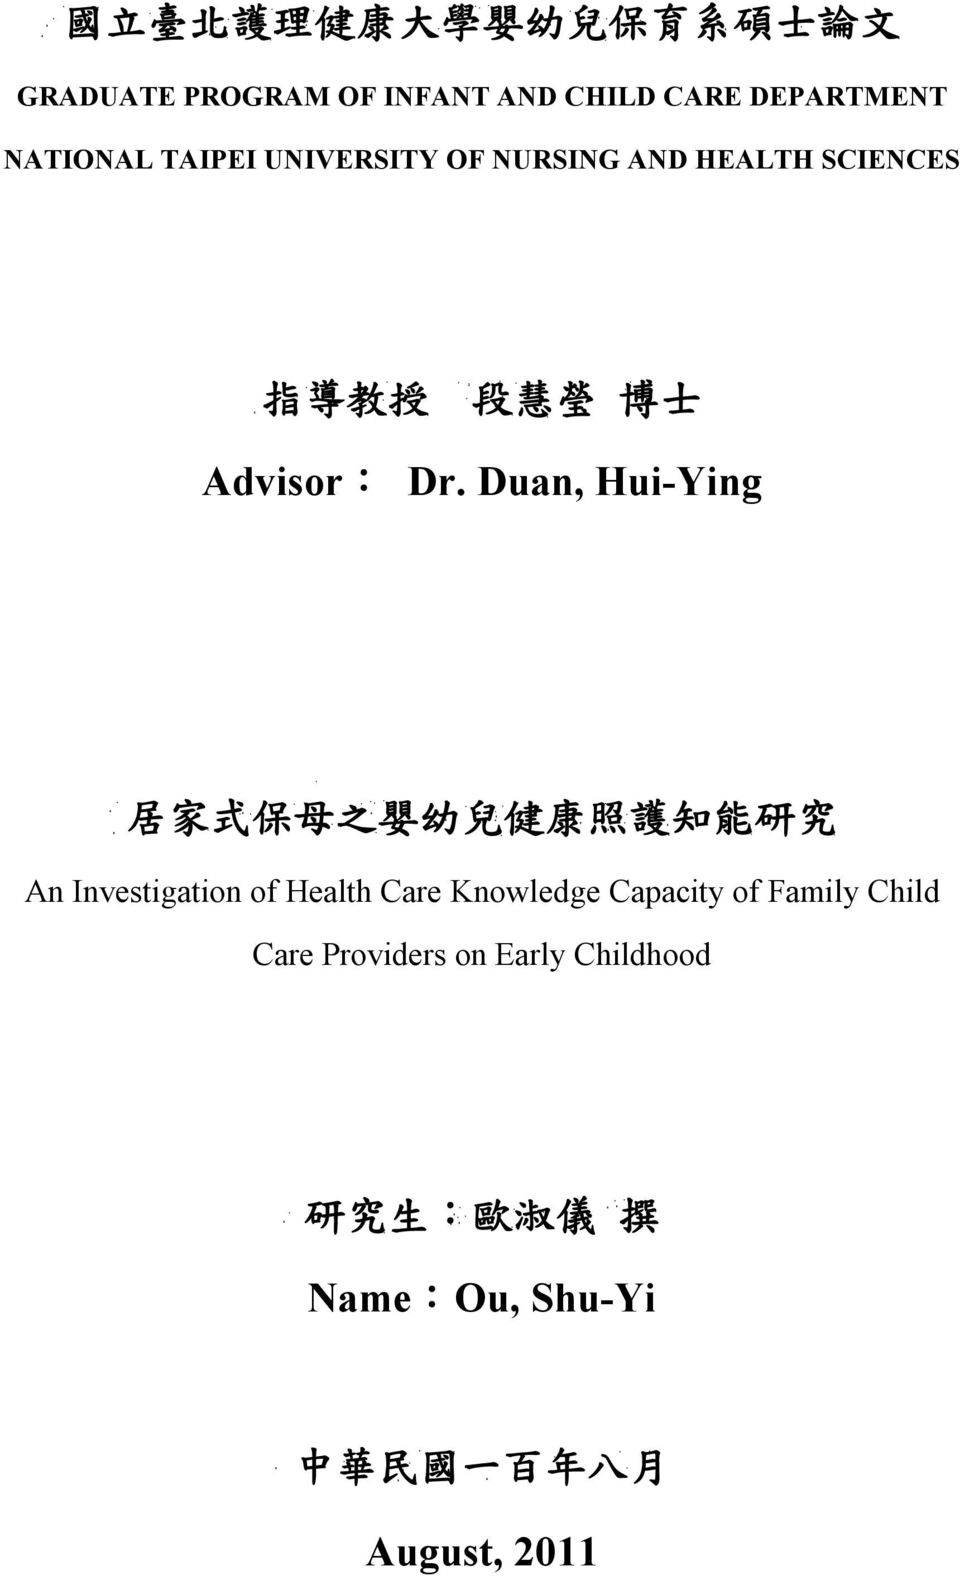 Duan, Hui-Ying 居 家 式 保 母 之 嬰 幼 兒 健 康 照 護 知 能 研 究 An Investigation of Health Care Knowledge